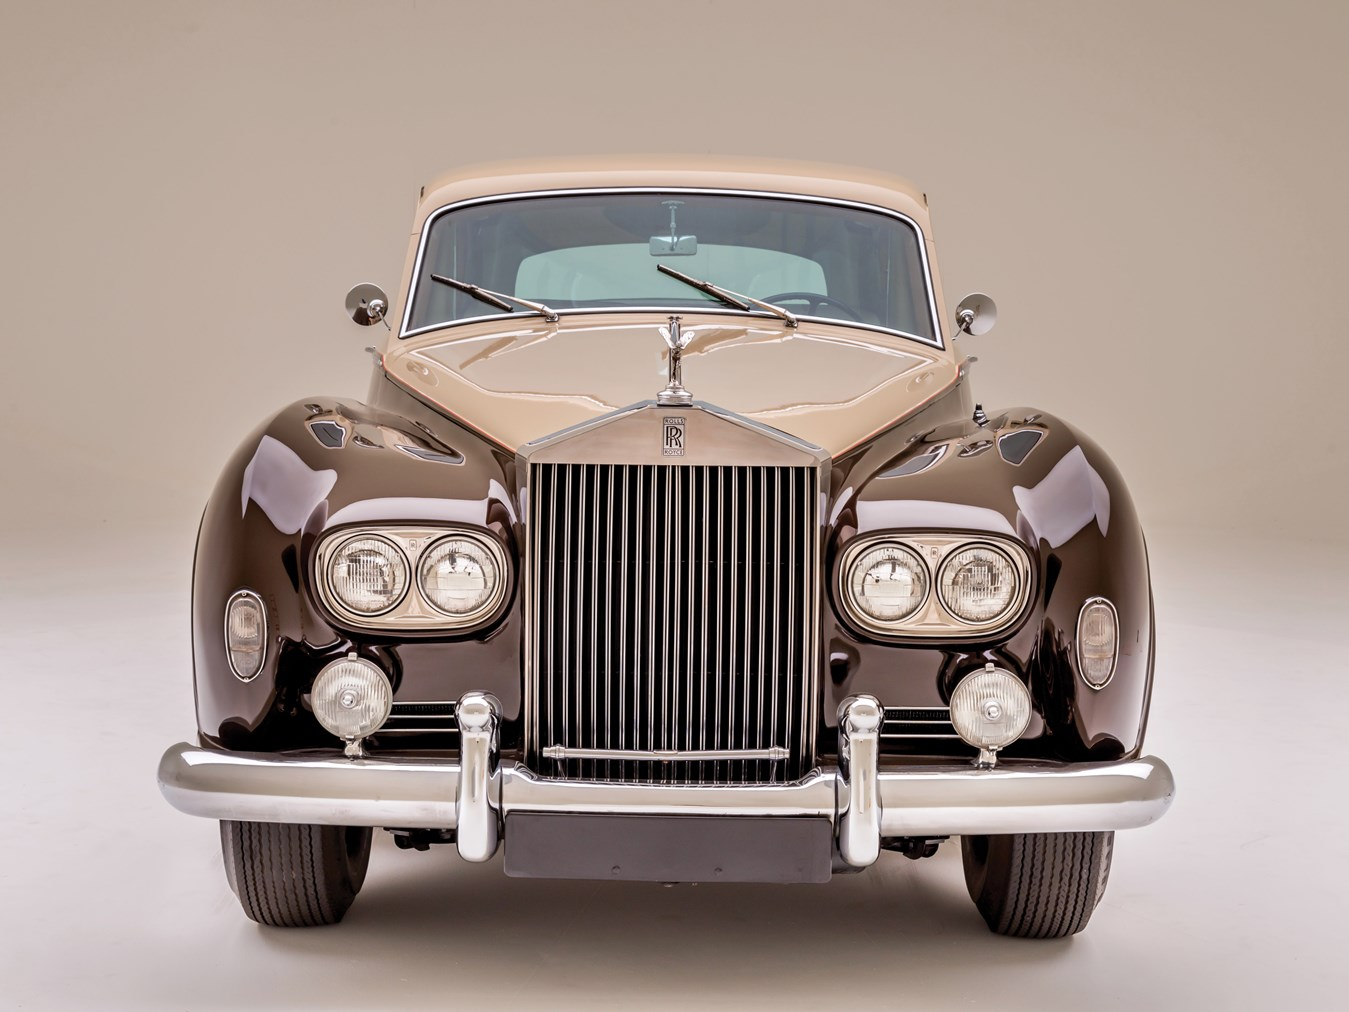 1966 Rolls-Royce Silver Cloud III Touring Limousine front